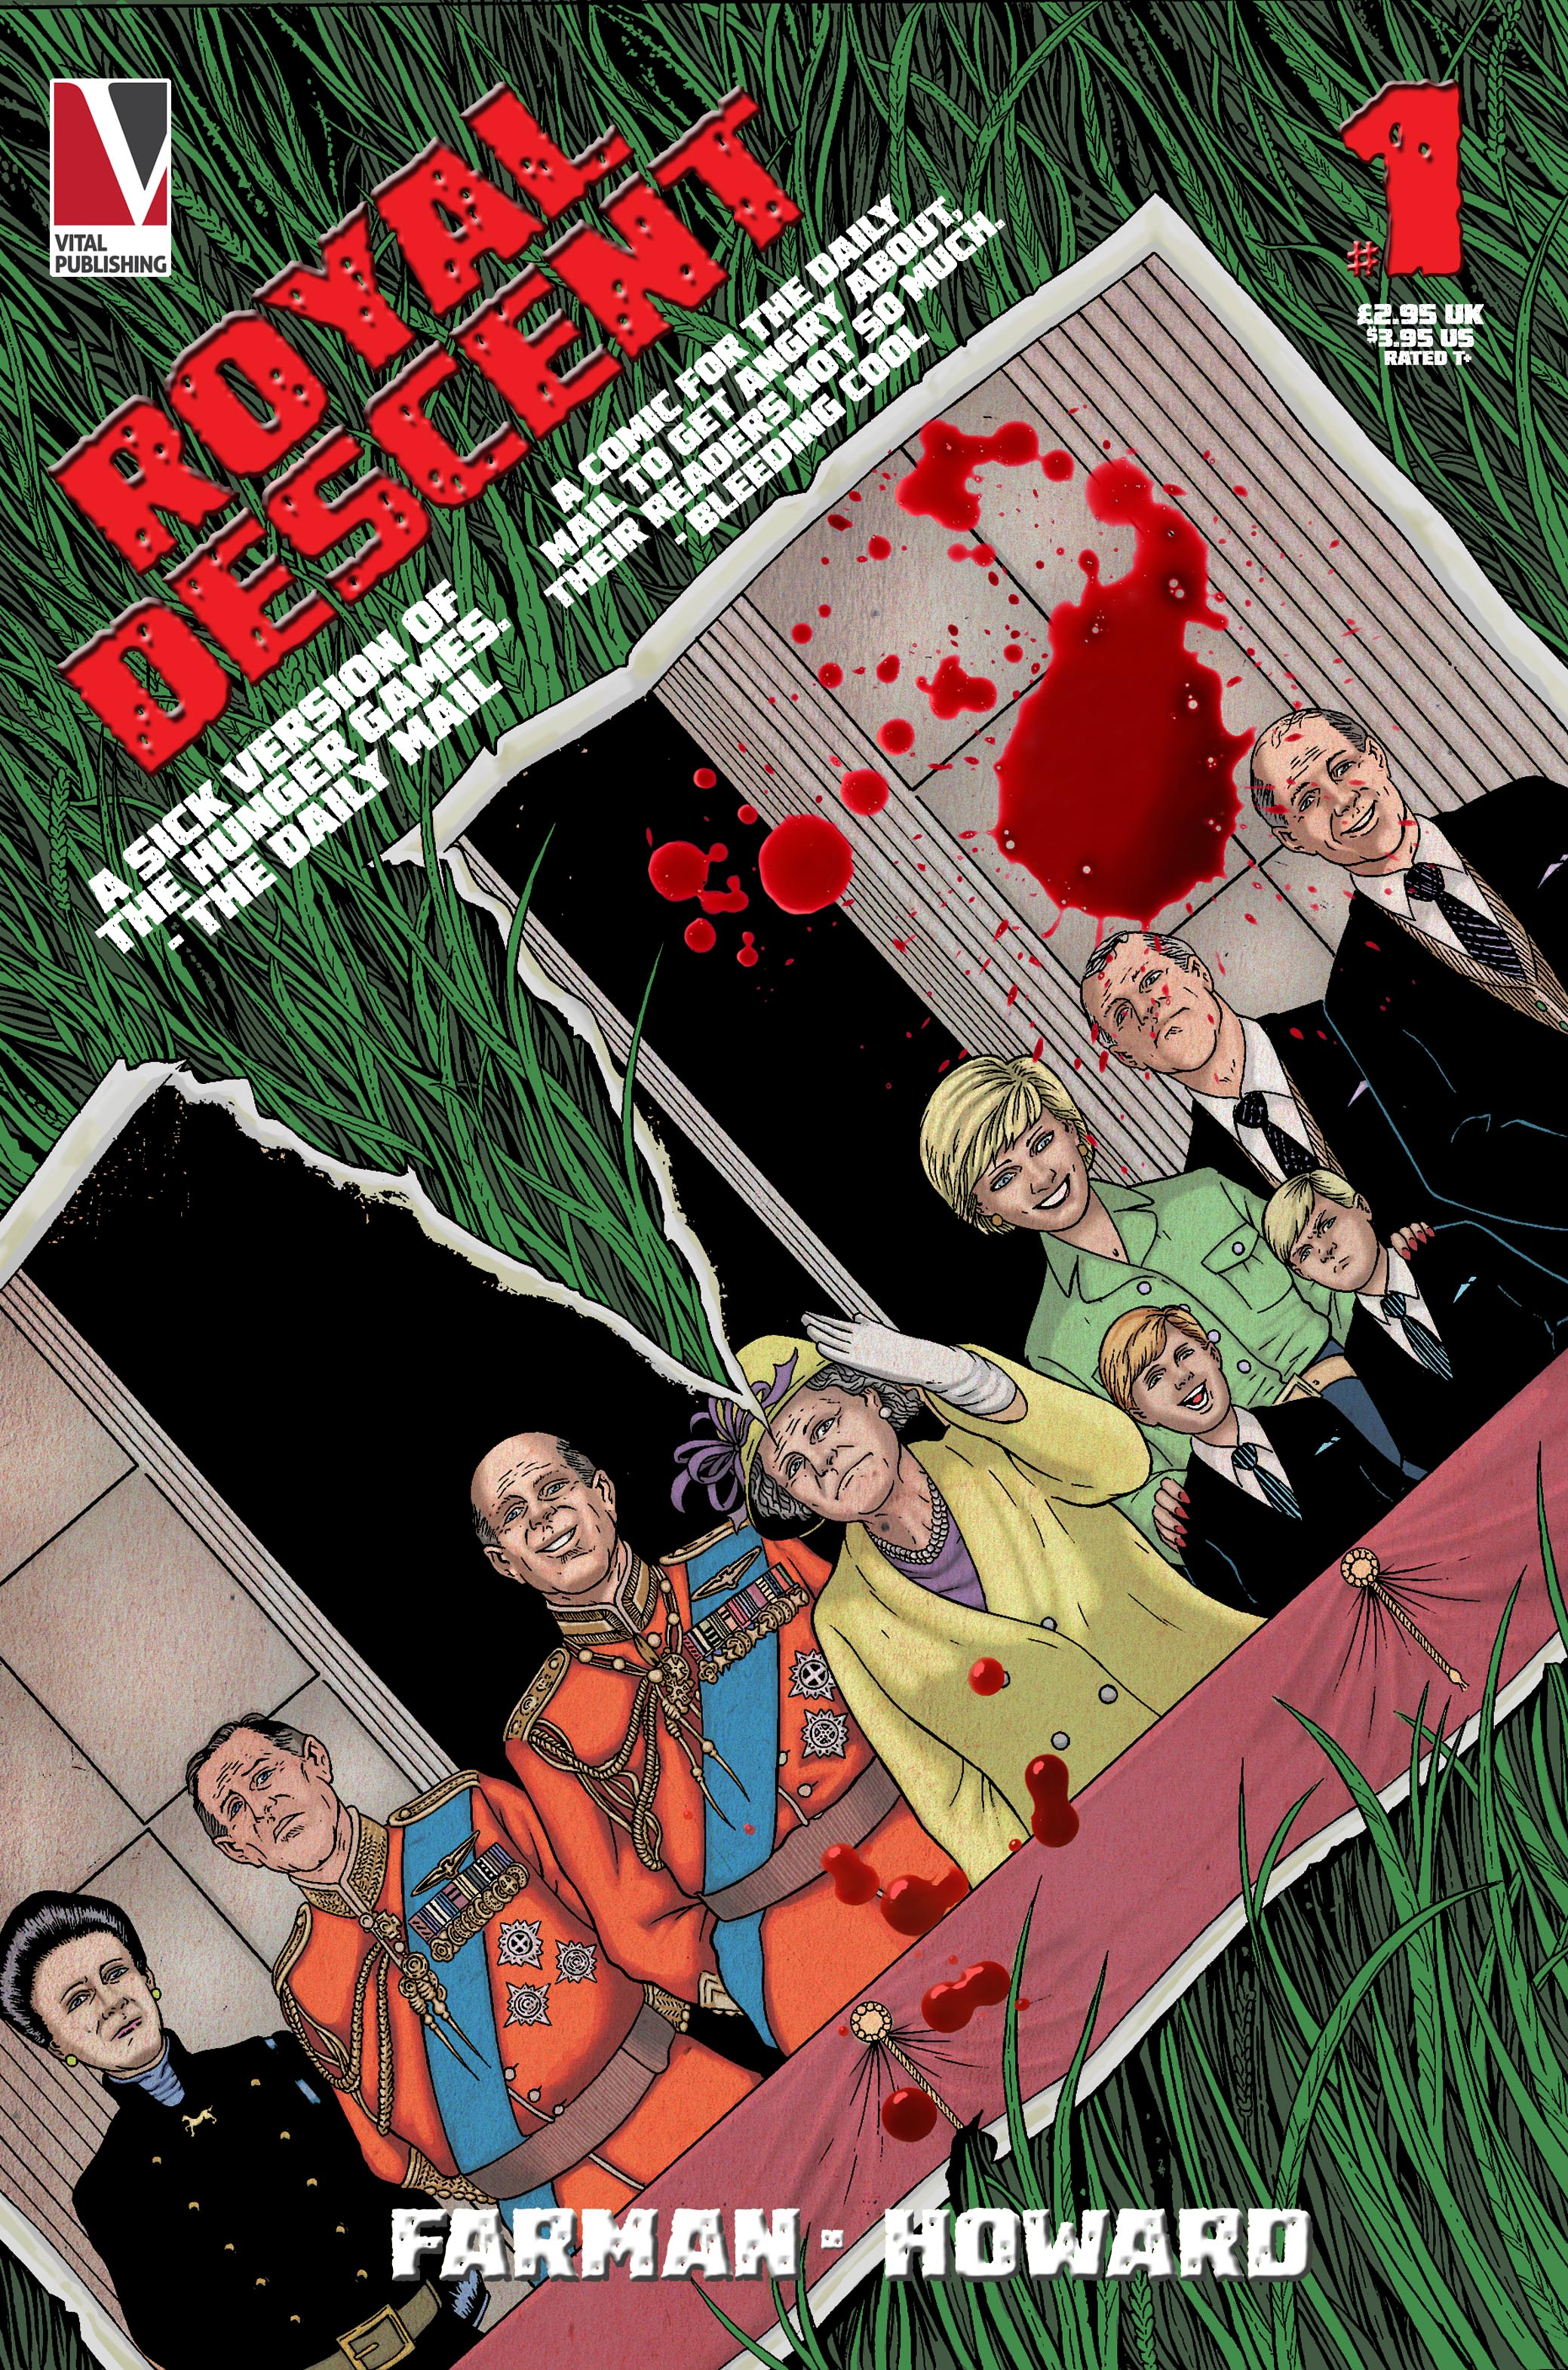 Royal Descent Issue 1 - Cover